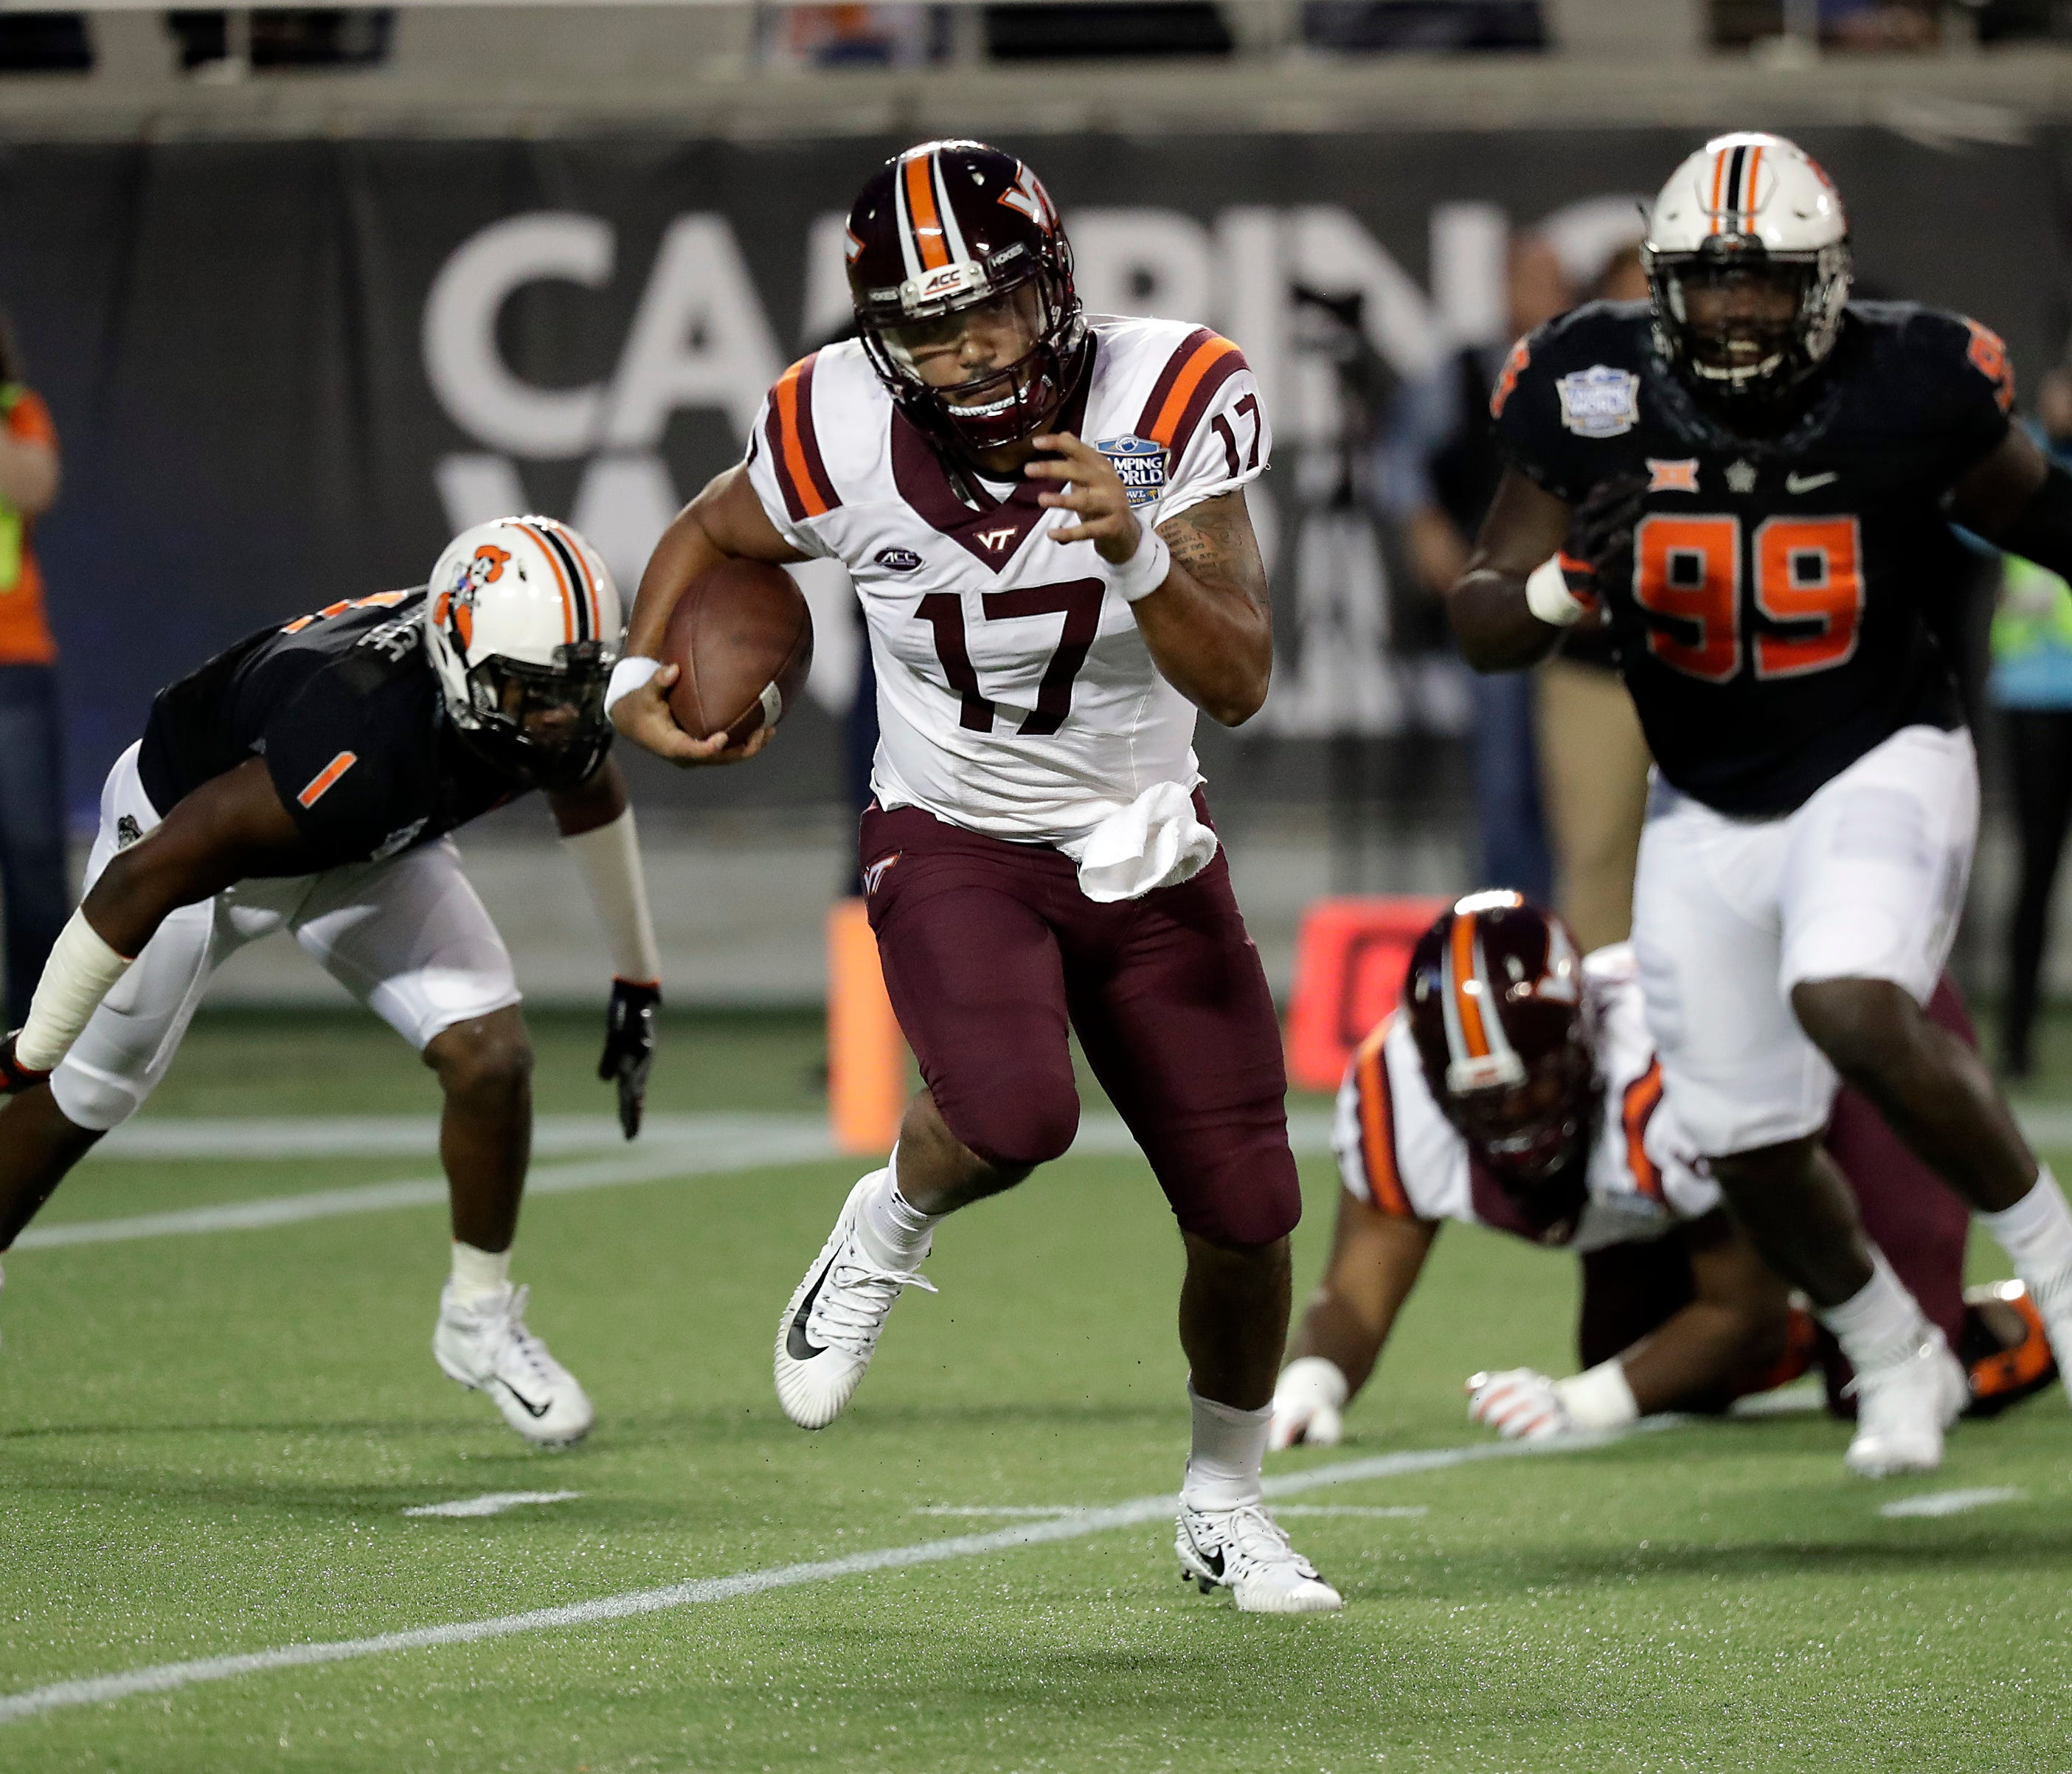 Virginia Tech quarterback Josh Jackson (17) scrambles away from Oklahoma State linebacker Calvin Bundage (1) and defensive end Trey Carter (99) during the first half of the Camping World Bowl NCAA college football game, Thursday, Dec. 28, 2017, in Or